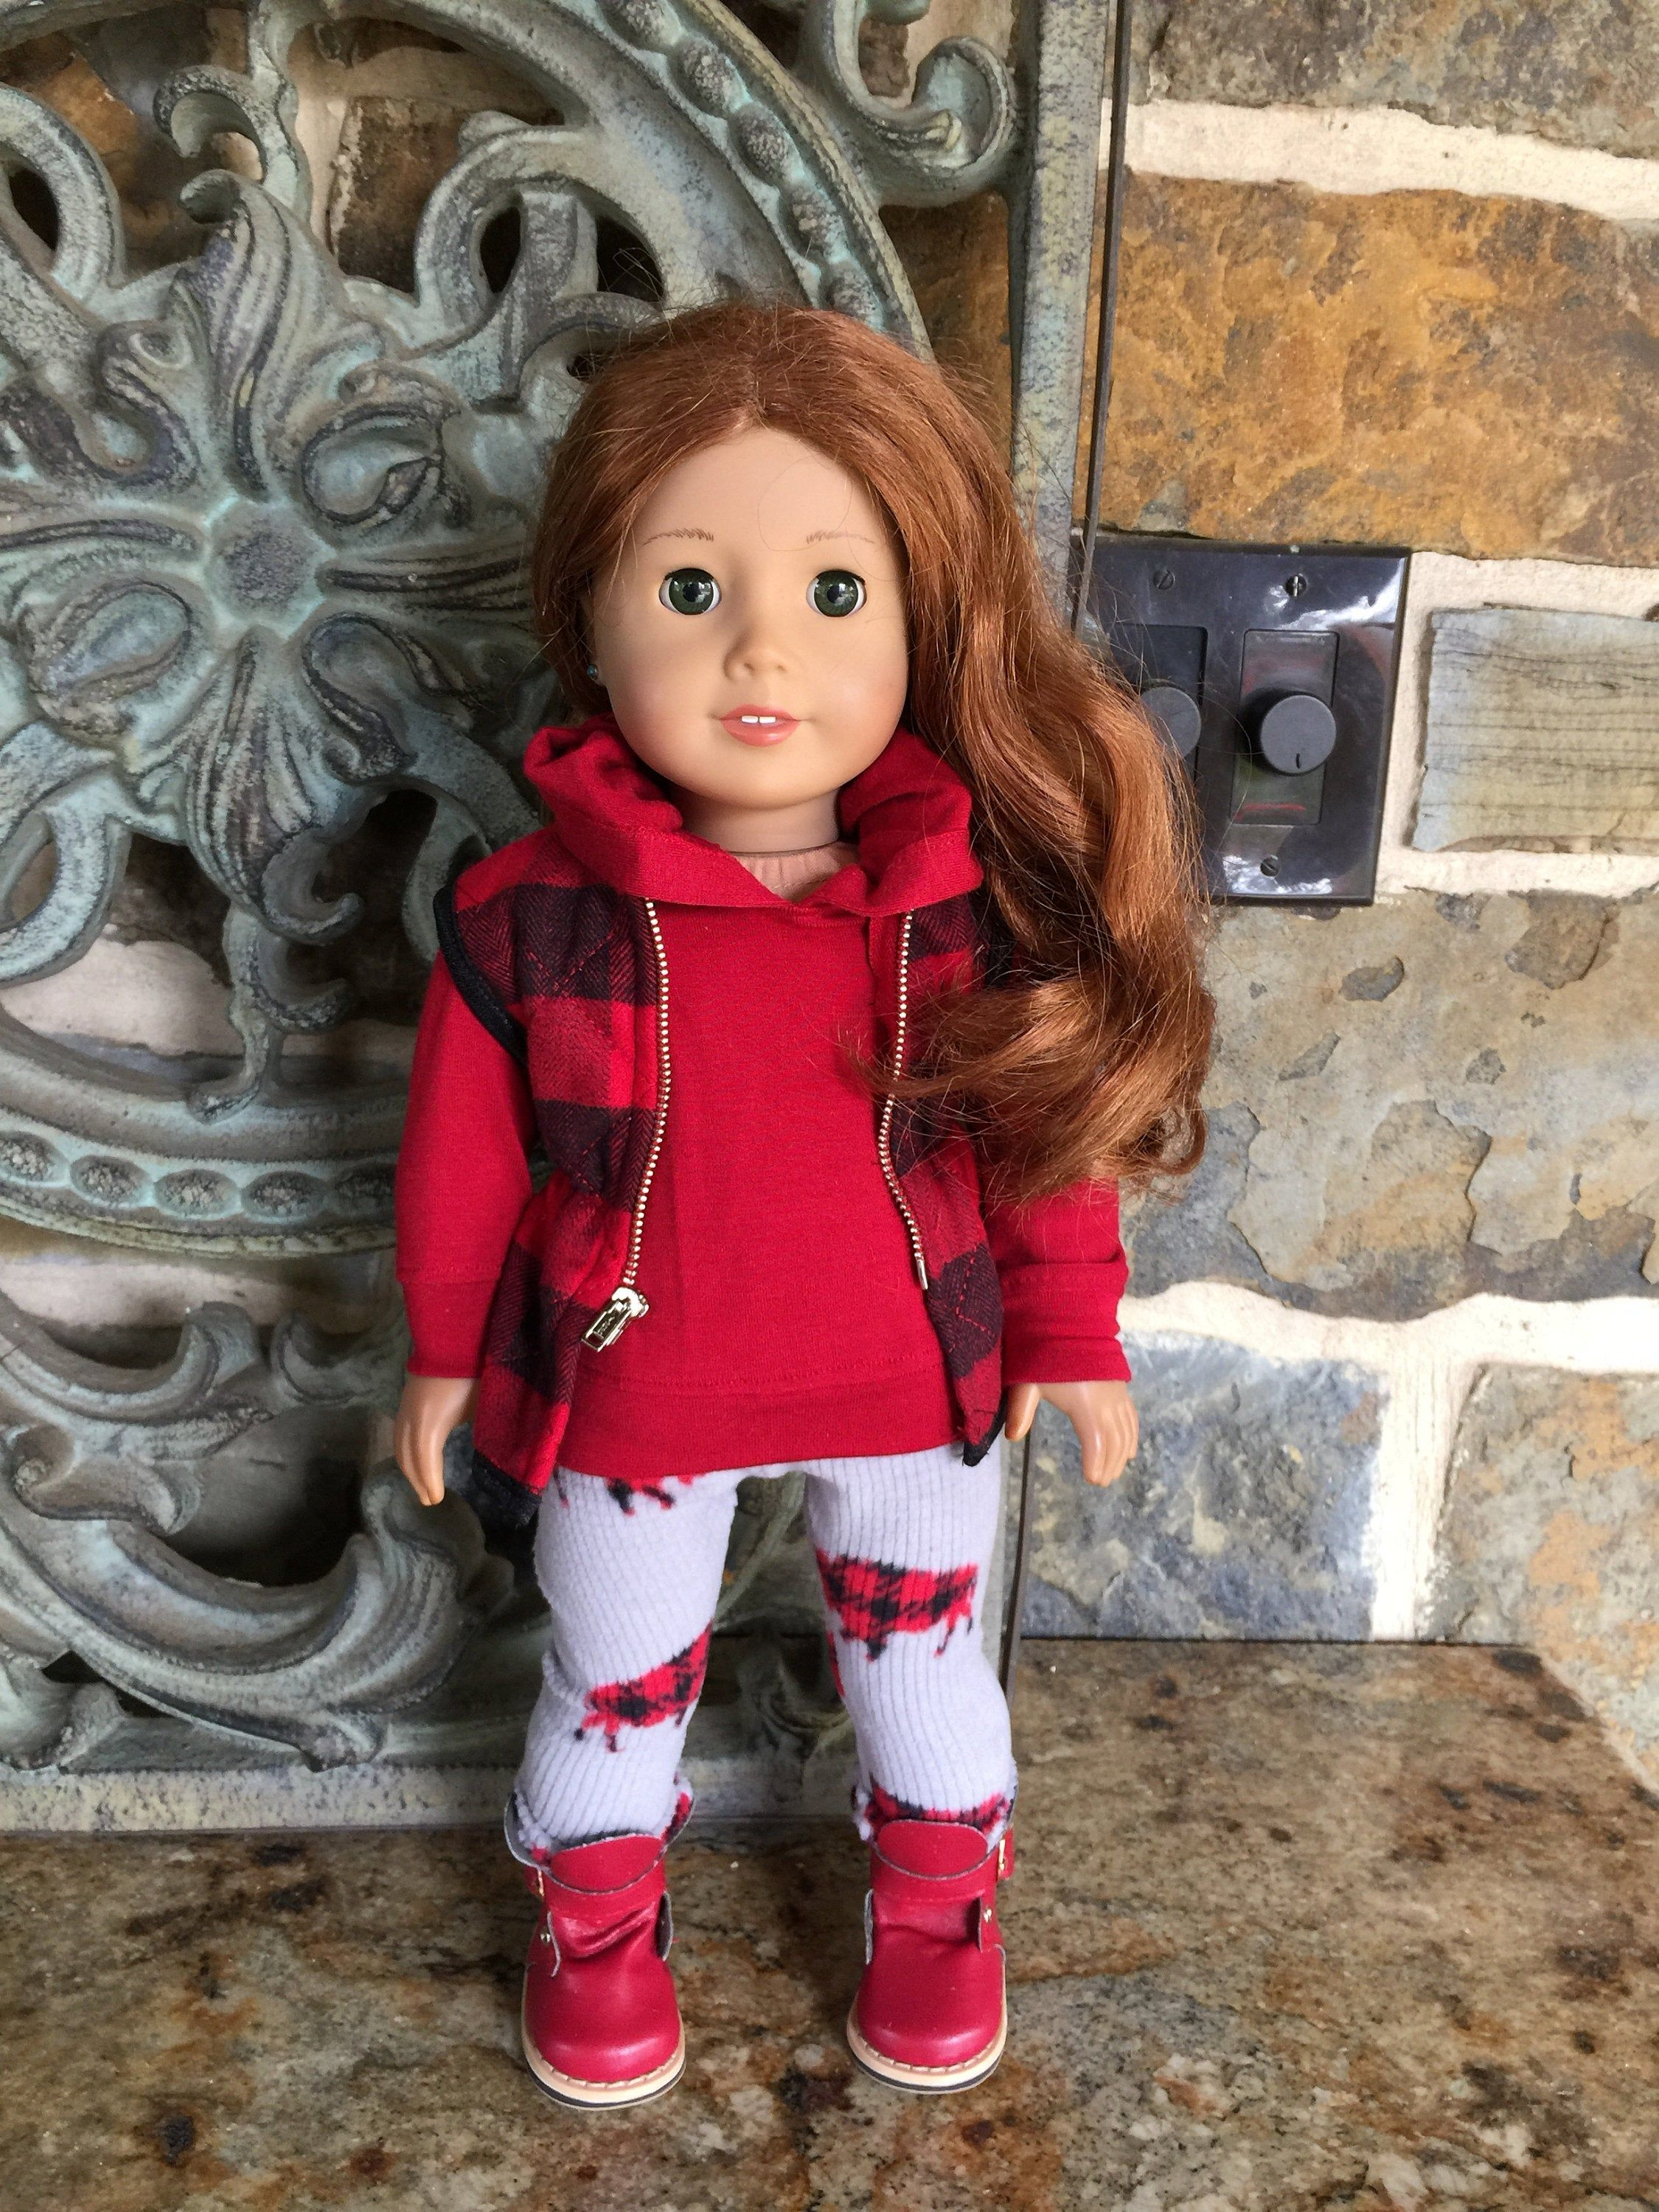 18 inch doll clothes made to fit dolls like the American Girl Doll- pink ice skates- white roller skates-black ballerina shoes #18inchdollsandclothes